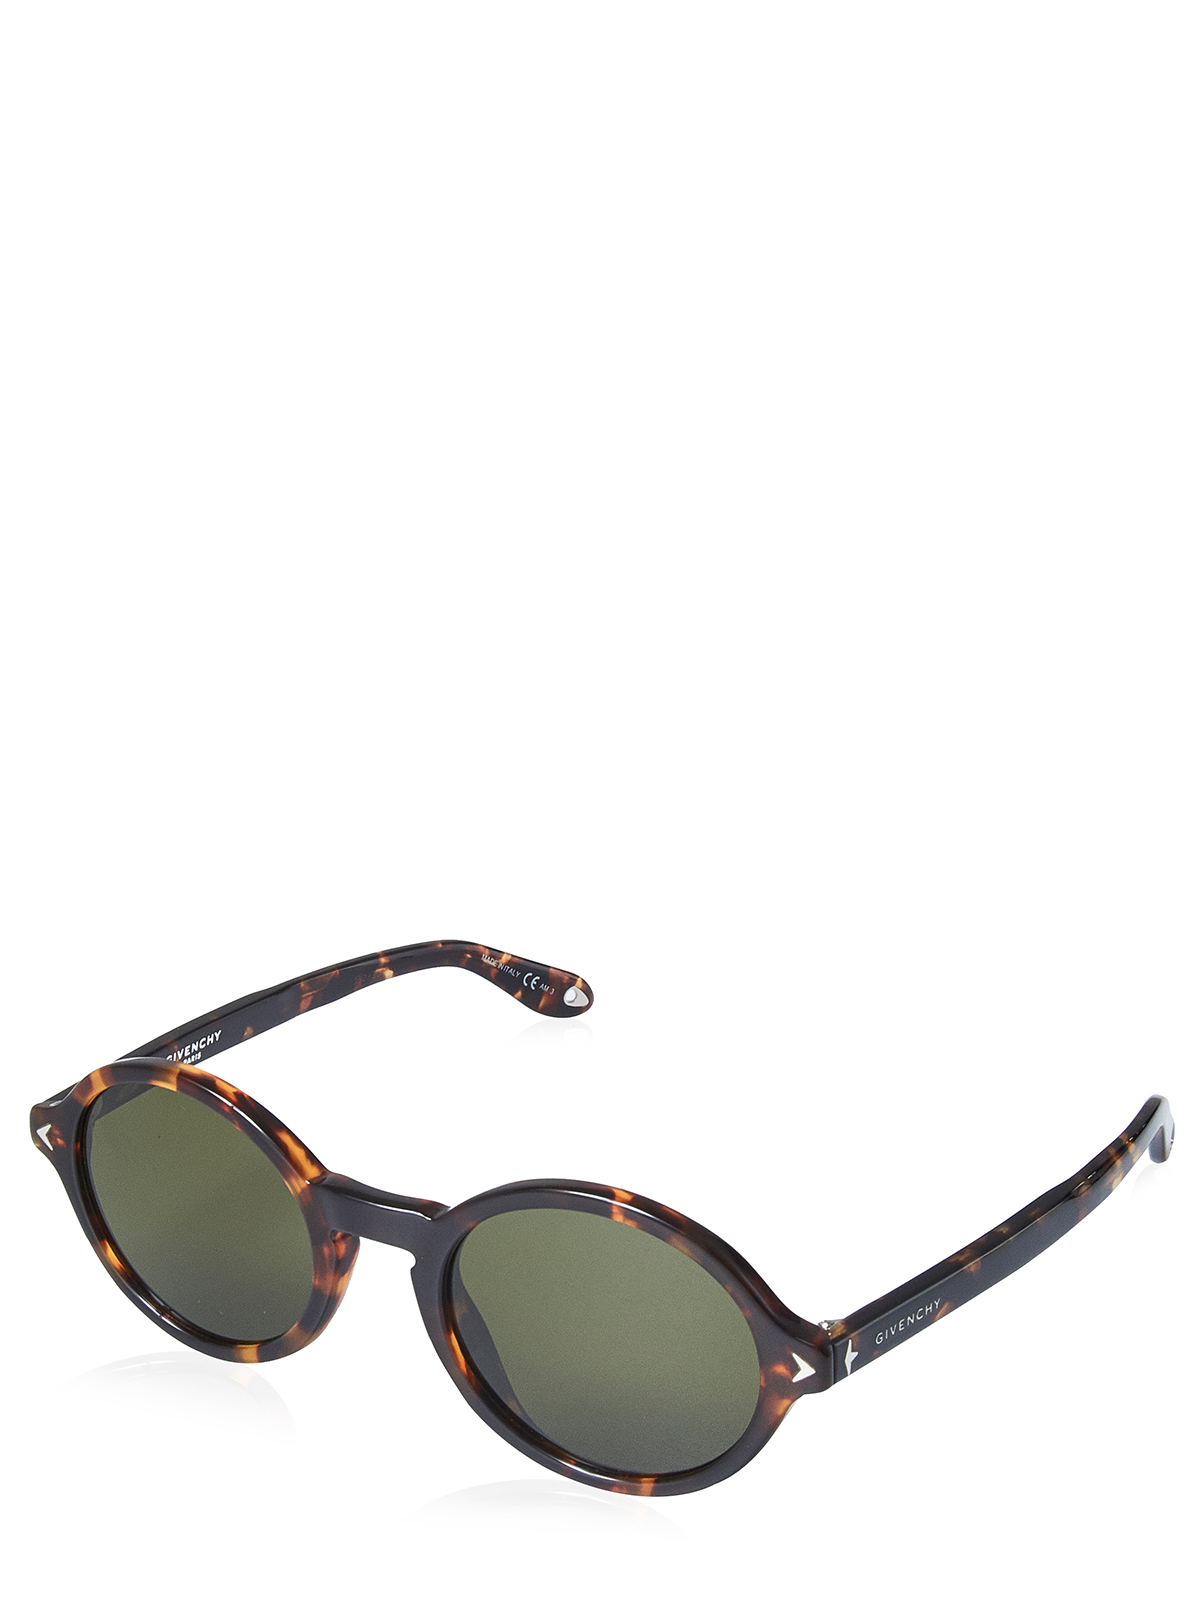 Givenchy Sonnenbrille by Givenchy